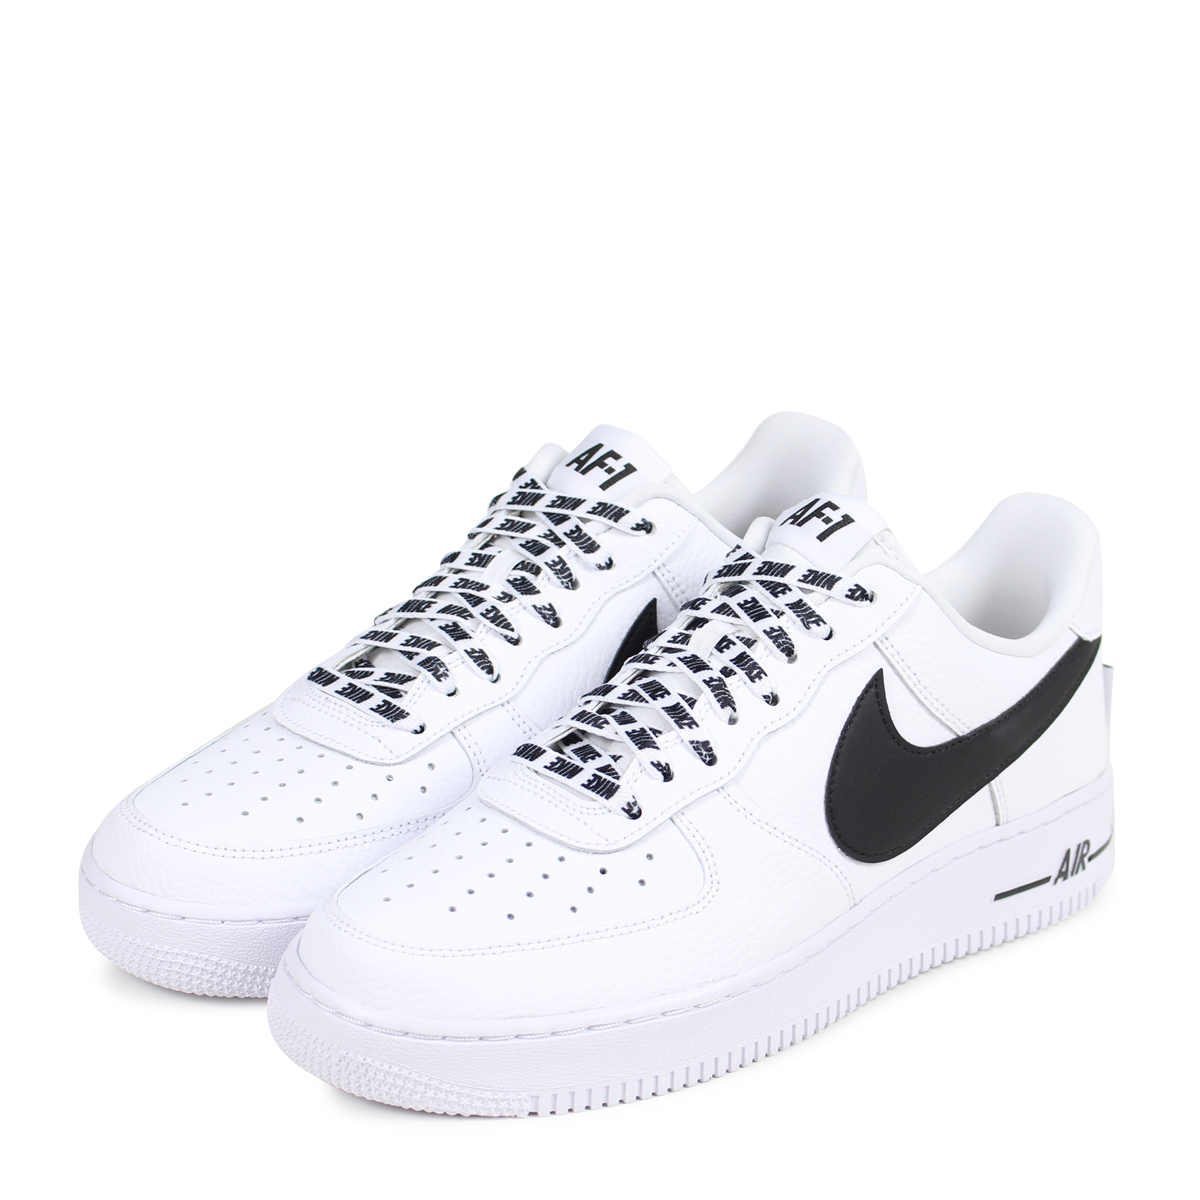 brand new d0e92 87d64 NIKE AIR FORCE 1 STATEMENT GAME Nike air force 1 07 LV8 sneakers men  823,511- ...